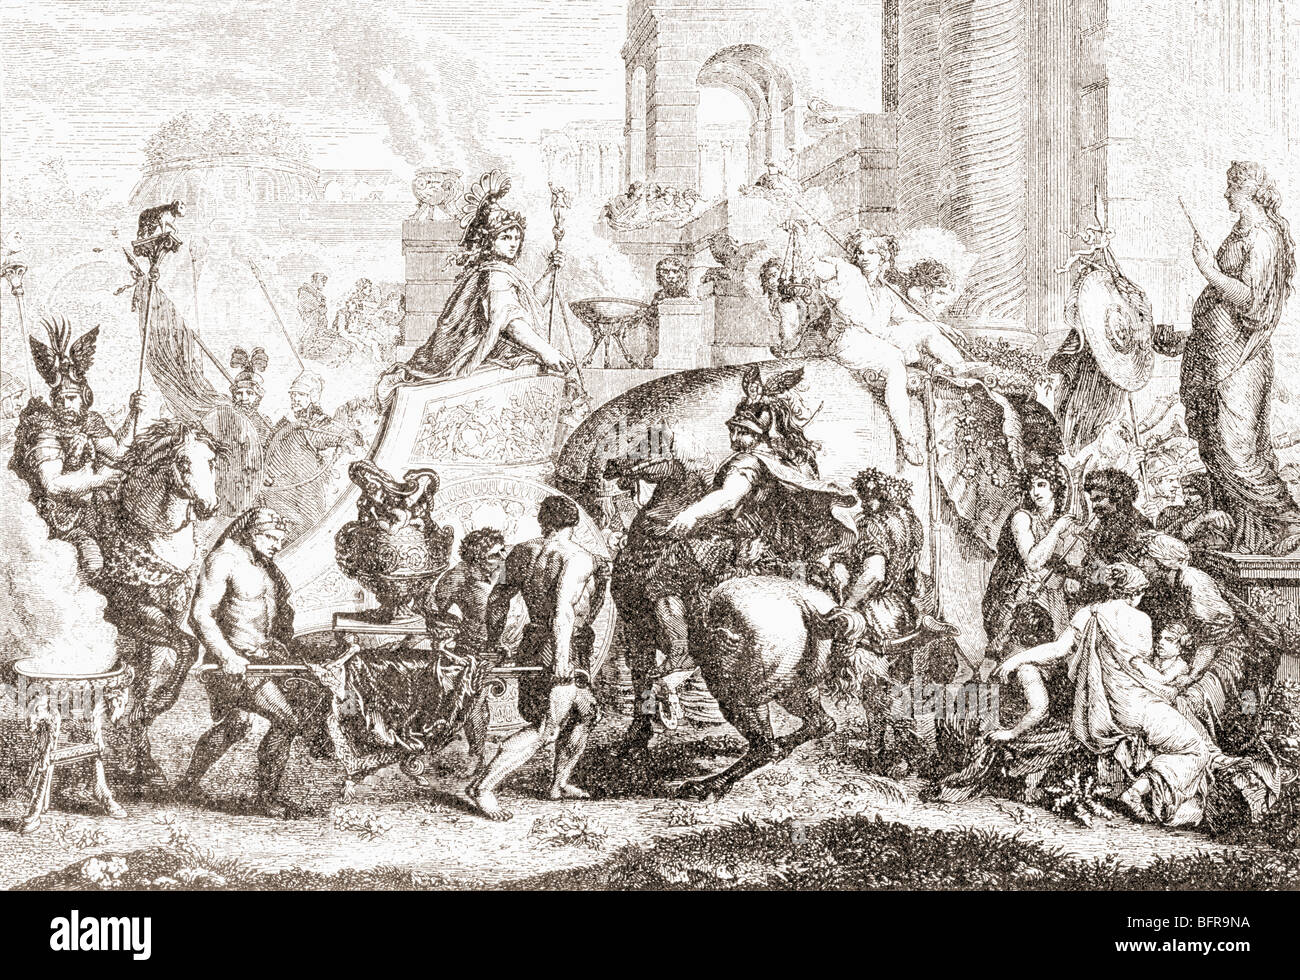 Alexander the Great enters Babylon in 331BC. - Stock Image